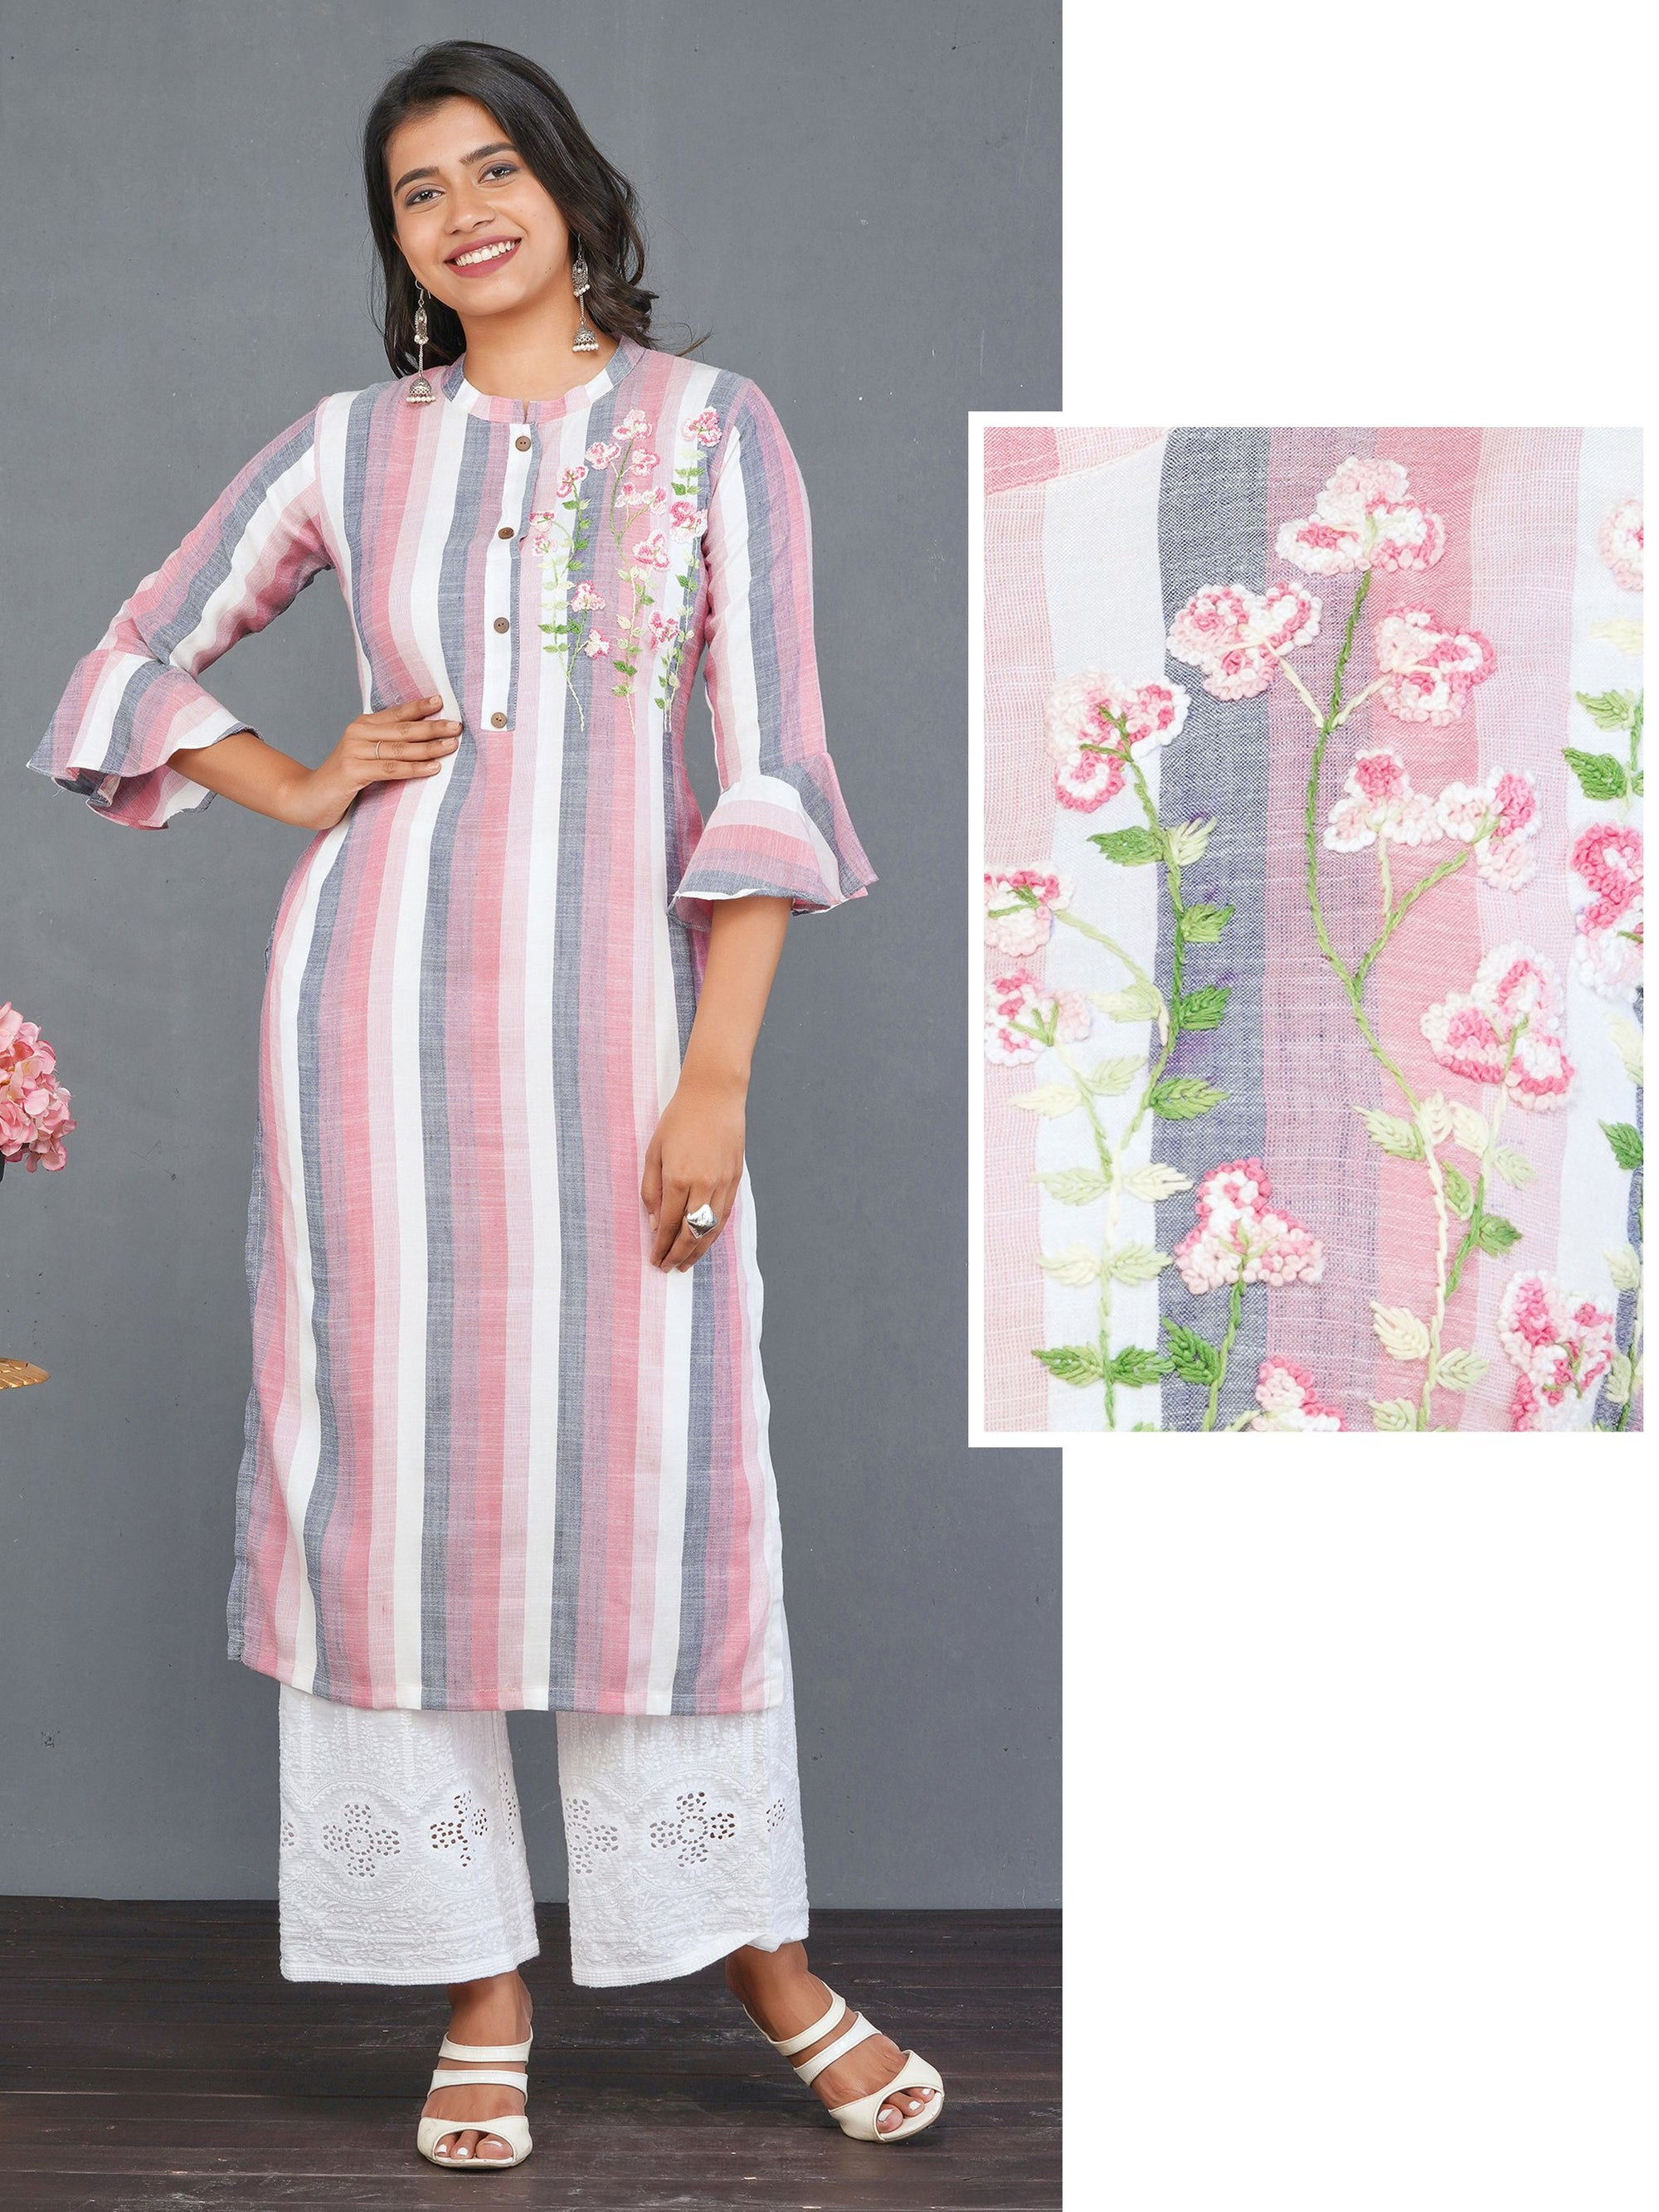 French Knot Floral Embroidered Striped Kurti – Mauve Pink